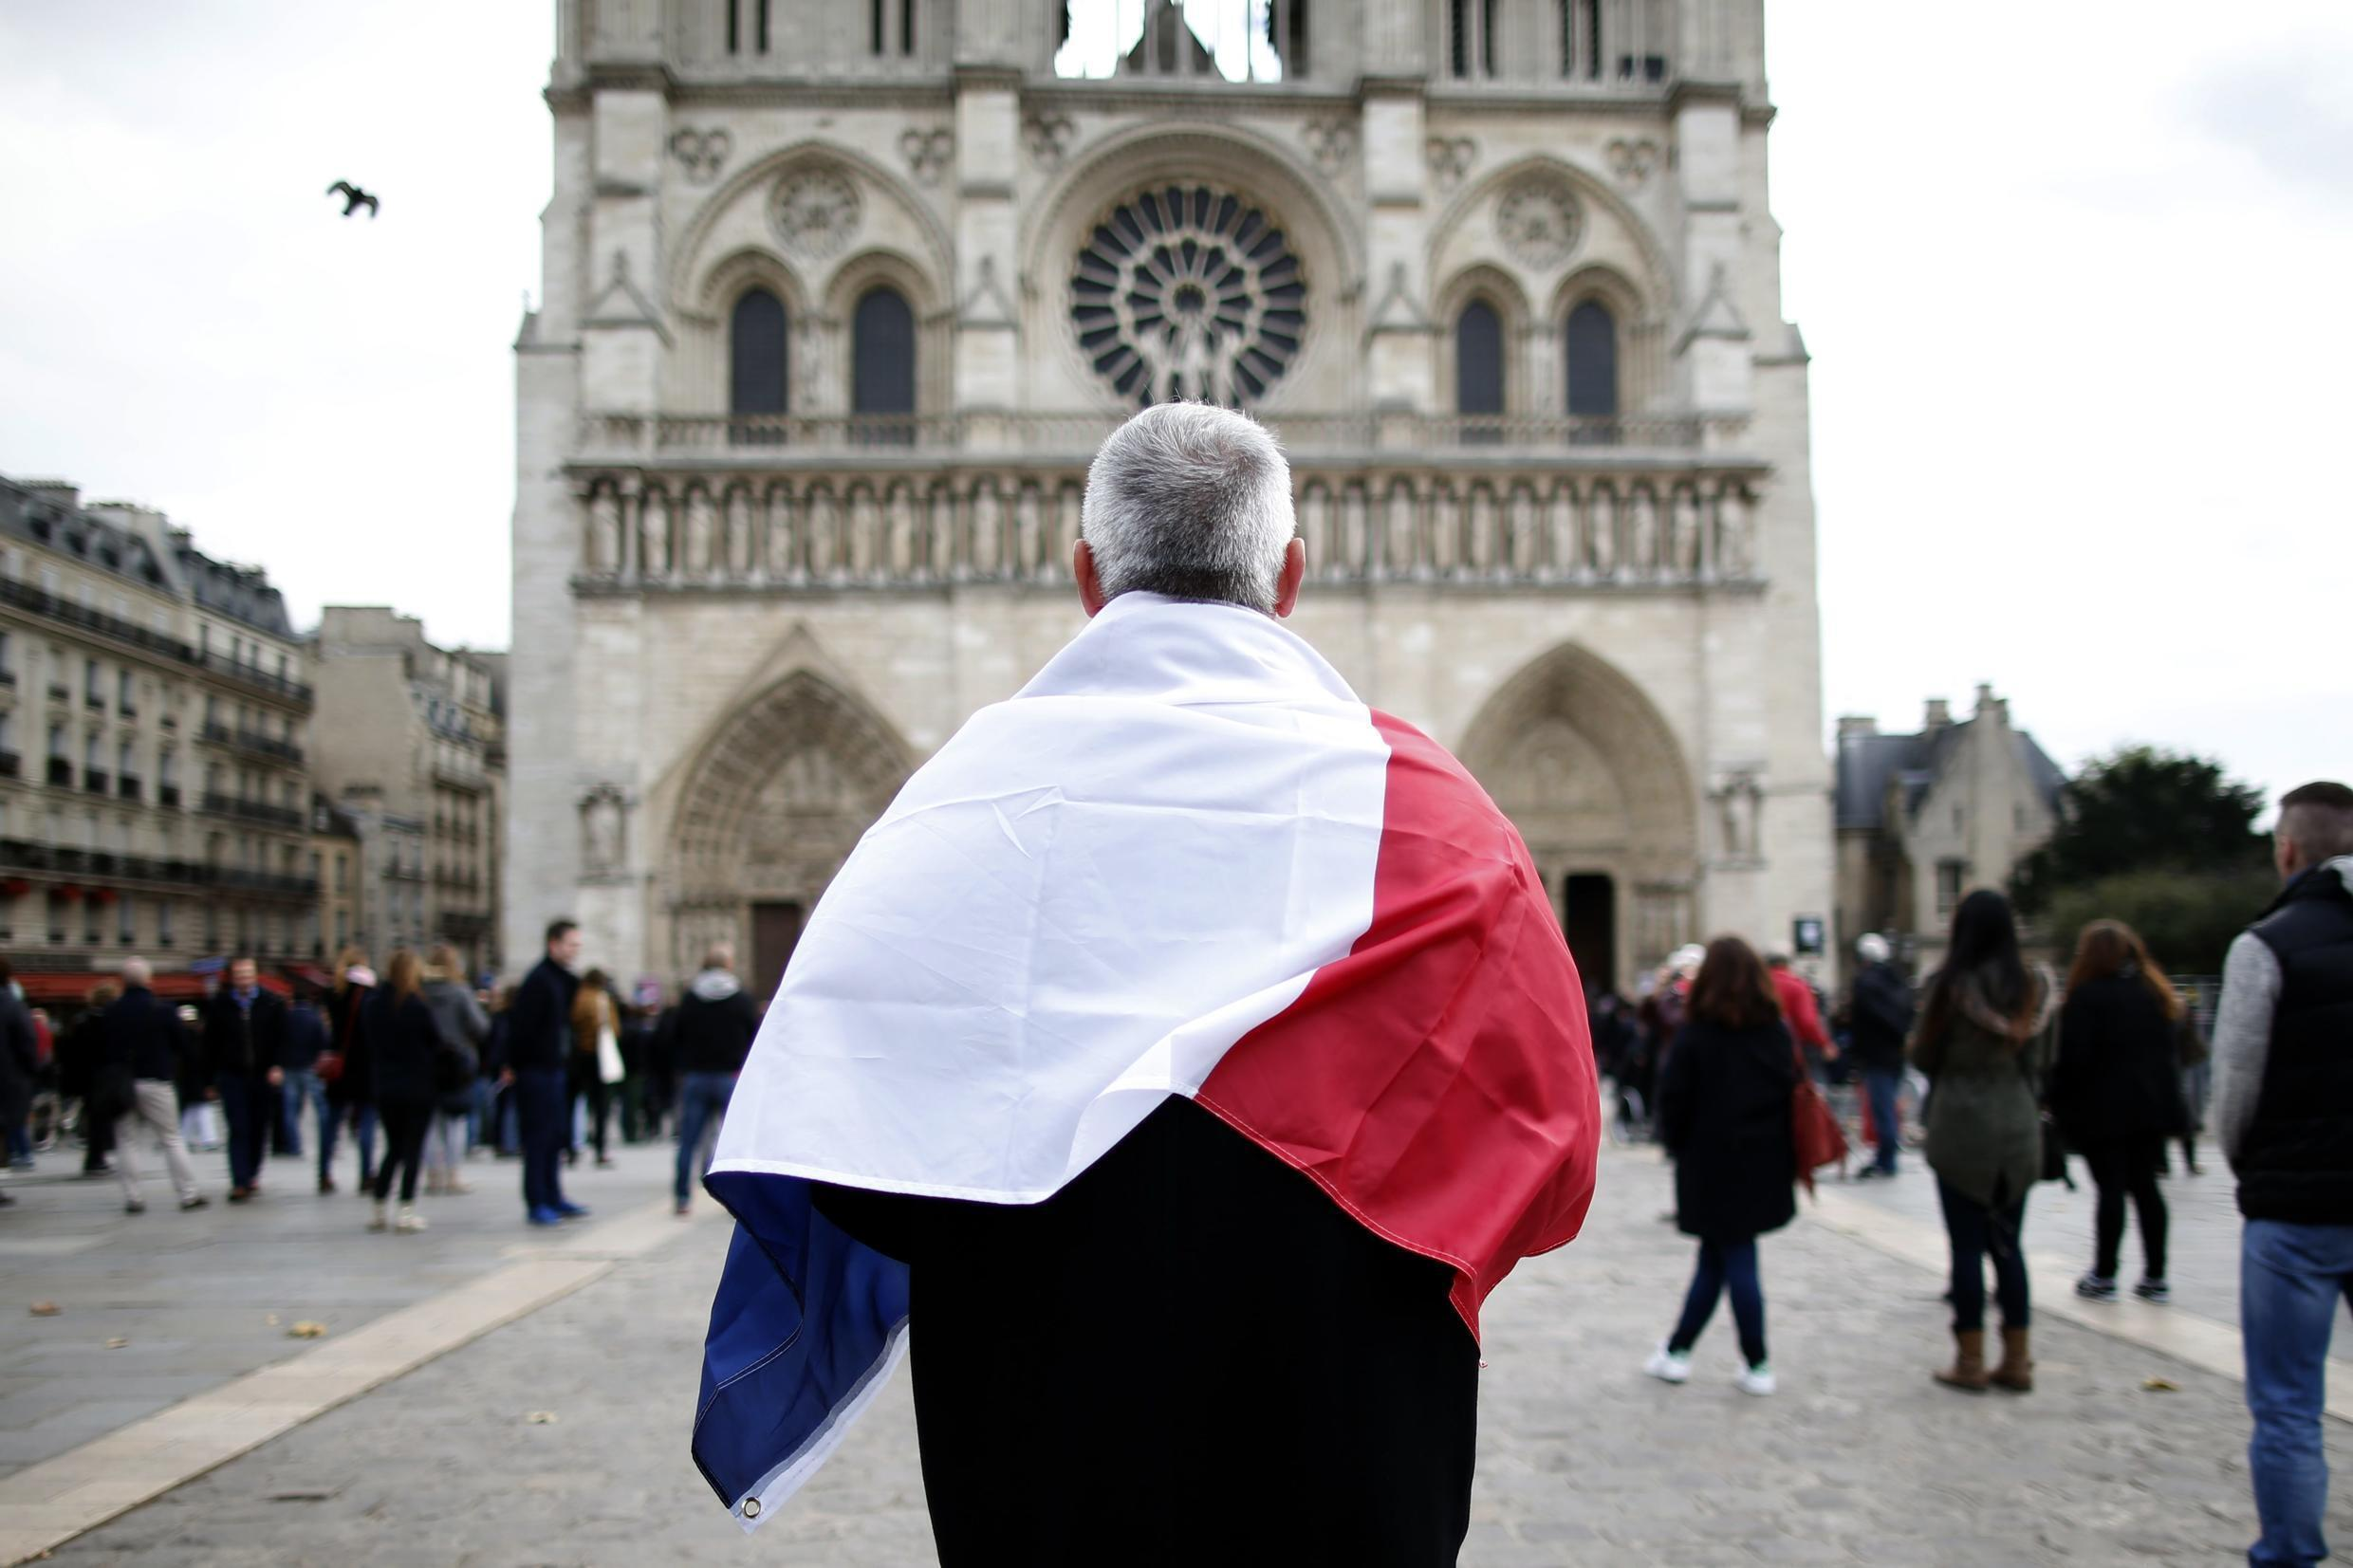 In front of Notre-Dame cathedral in Paris